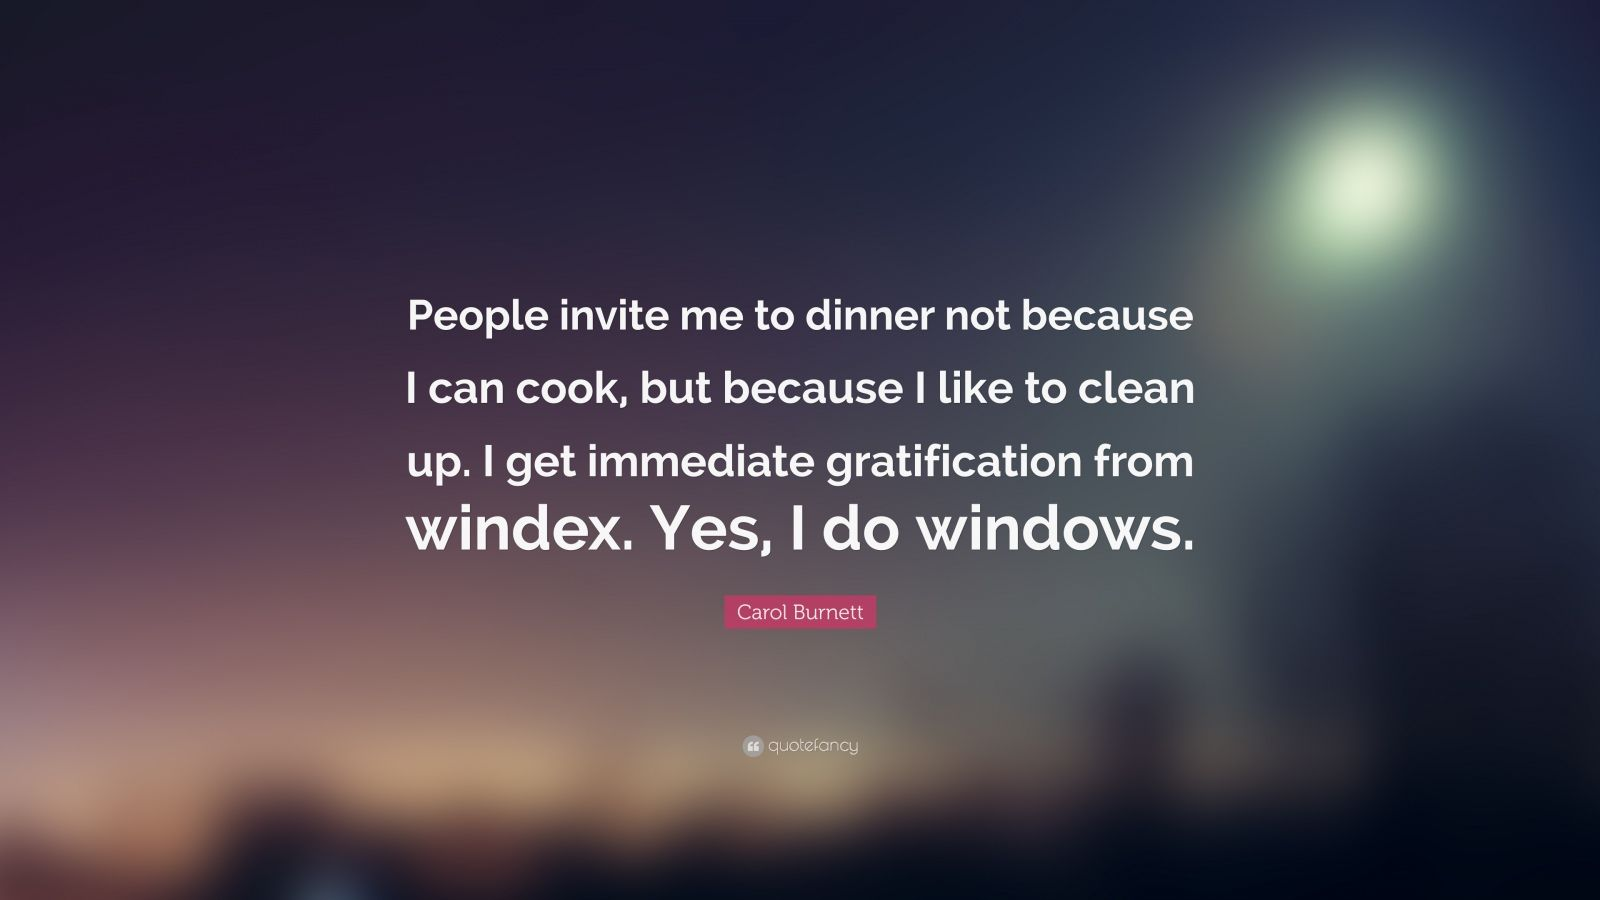 """Carol Burnett Quote: """"People invite me to dinner not because I can cook, but because I like to clean up. I get immediate gratification from windex. Yes, I do windows."""""""